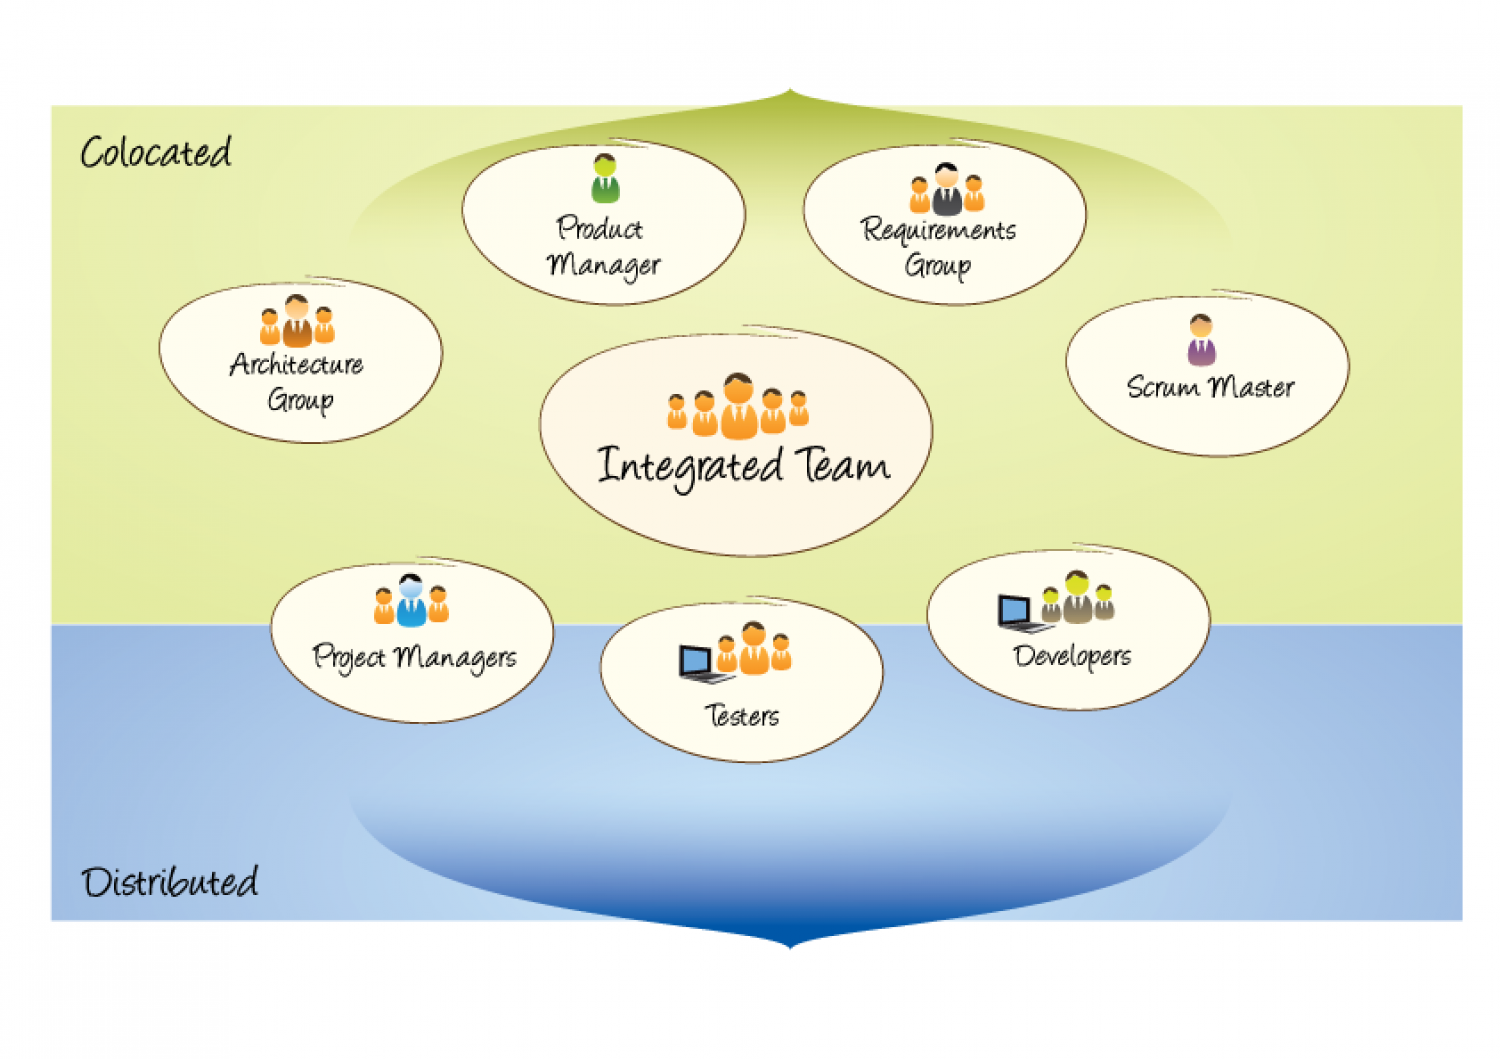 BSI's Agile Team Distribution Infographic